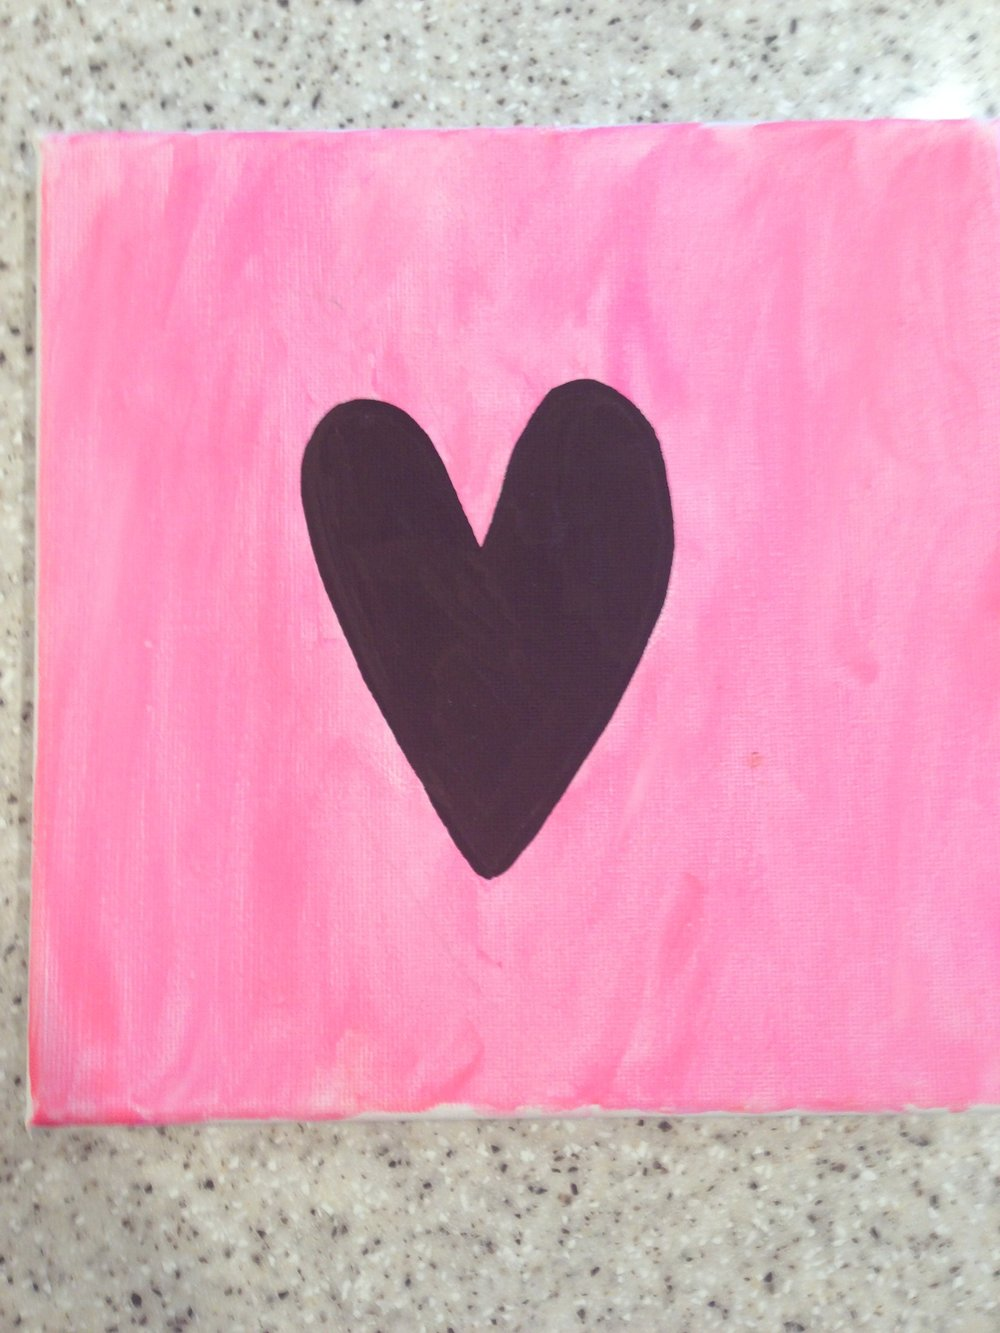 Heart Canvas - Instructions1. Cut out a cardboard or paper shape (heart)2. Stick it to the canvas with double sided tape3. Paint the area around the shape 4. Pull off the shape, can paint or color it in if you like as i have done in black